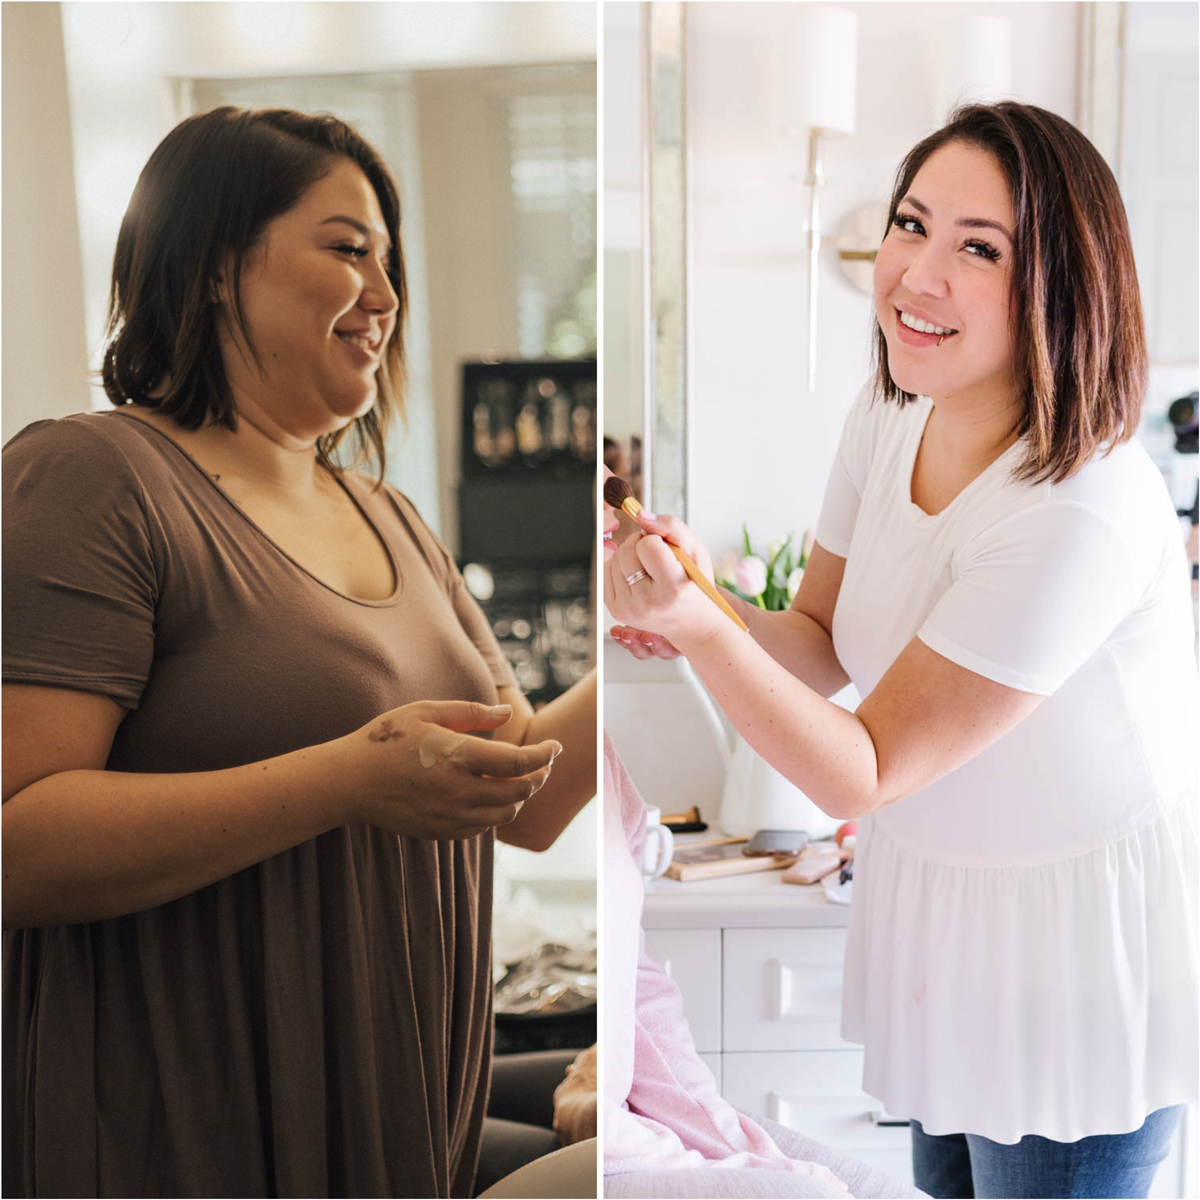 Kaitlin Hargreaves Weight Loss Journey